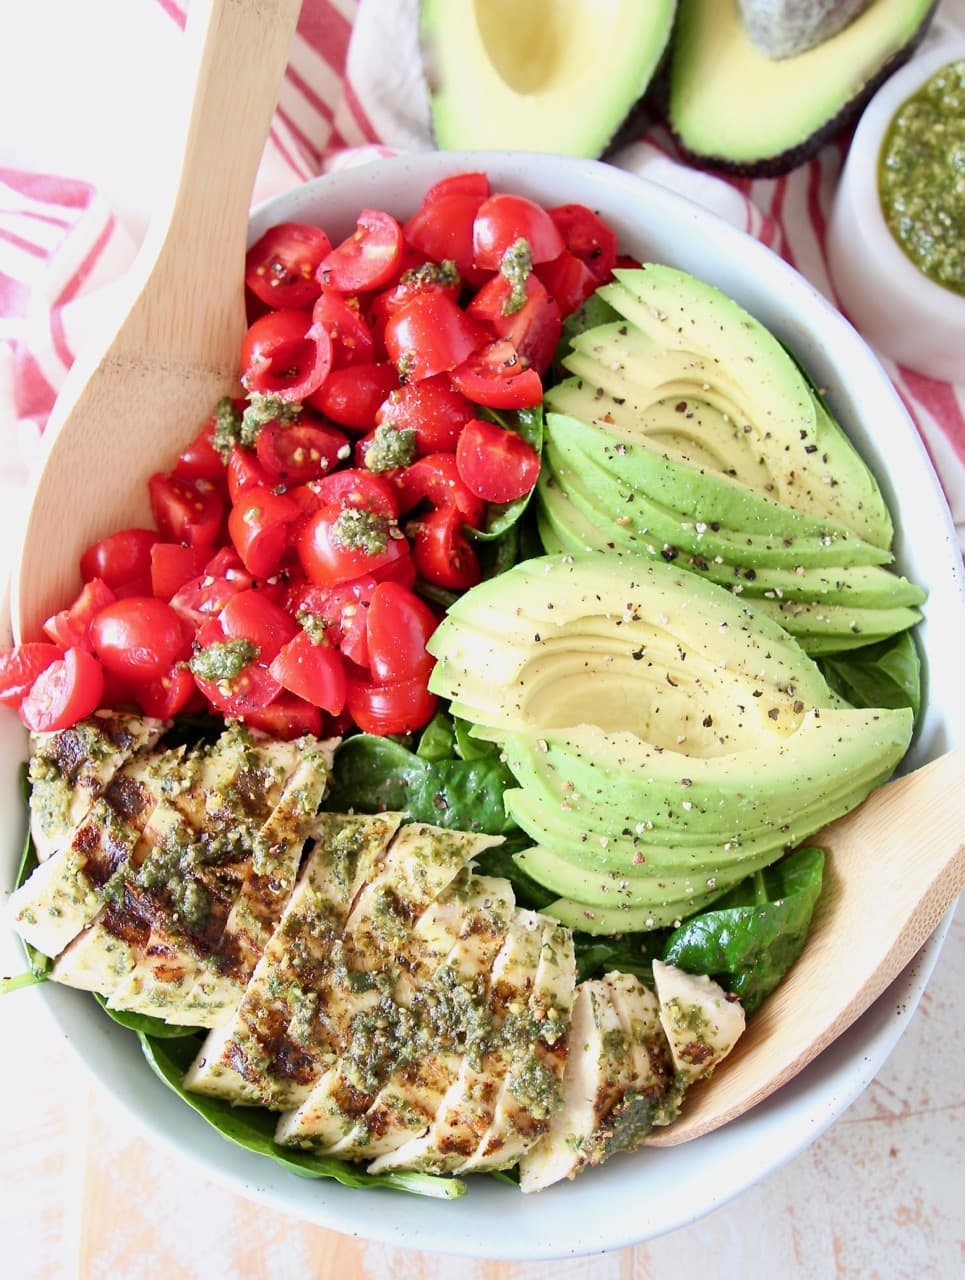 Sliced pesto chicken, sliced avocado, diced tomatoes and spinach in large bowl with wooden serving spoons